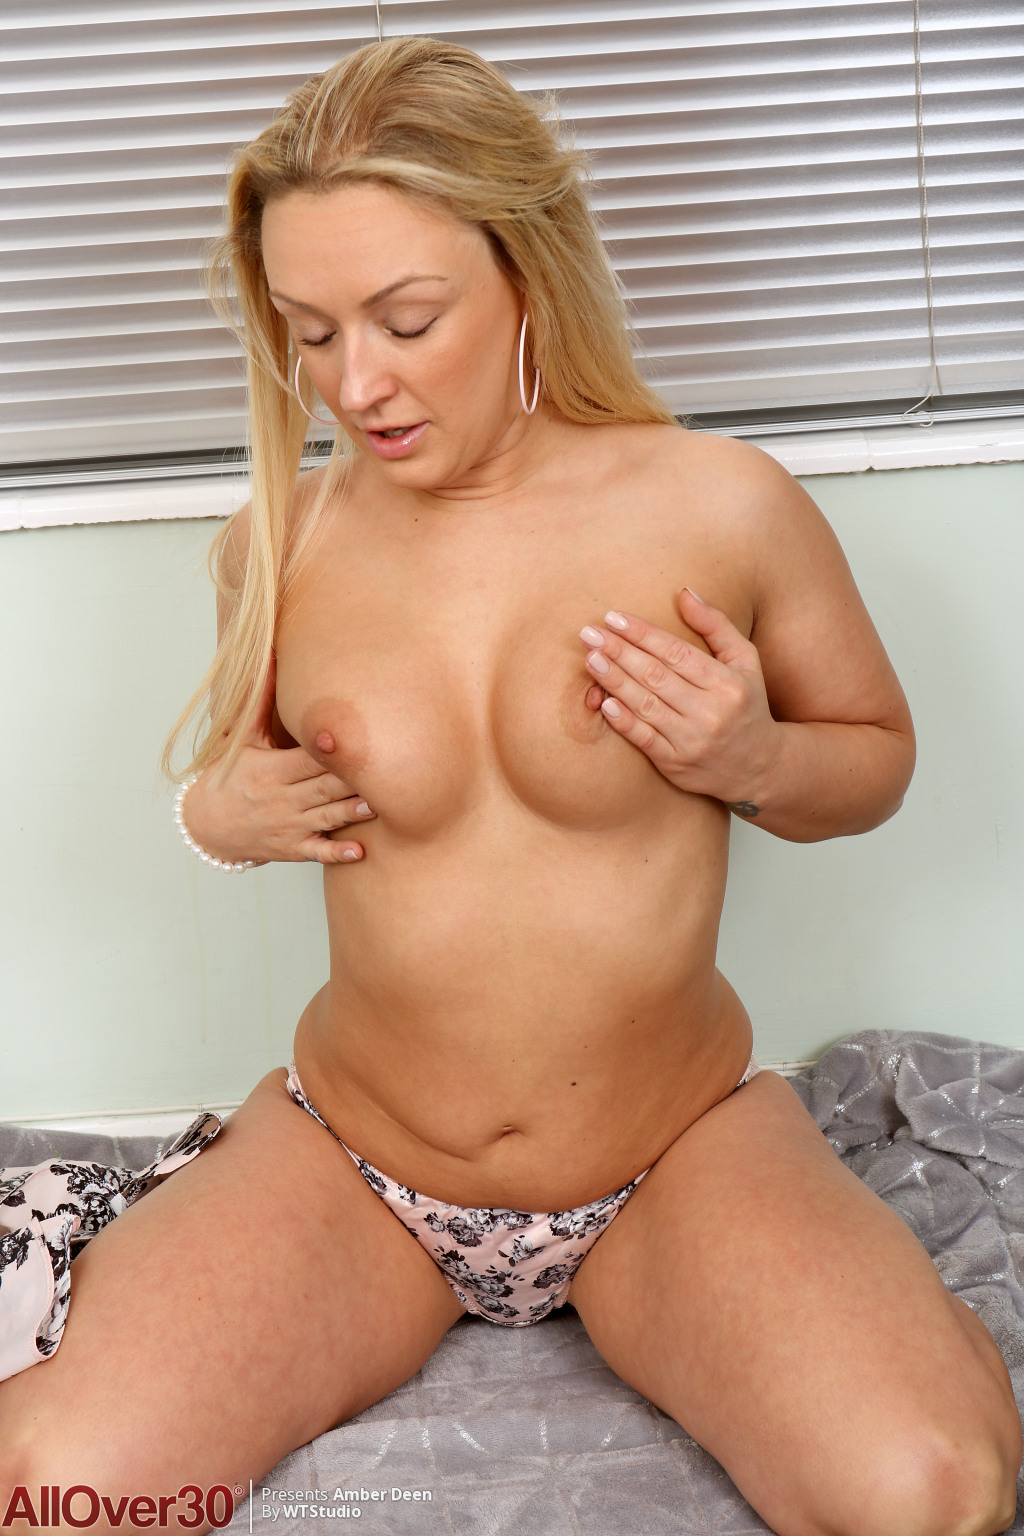 amber-deen-lovely-blonde-showoff-08